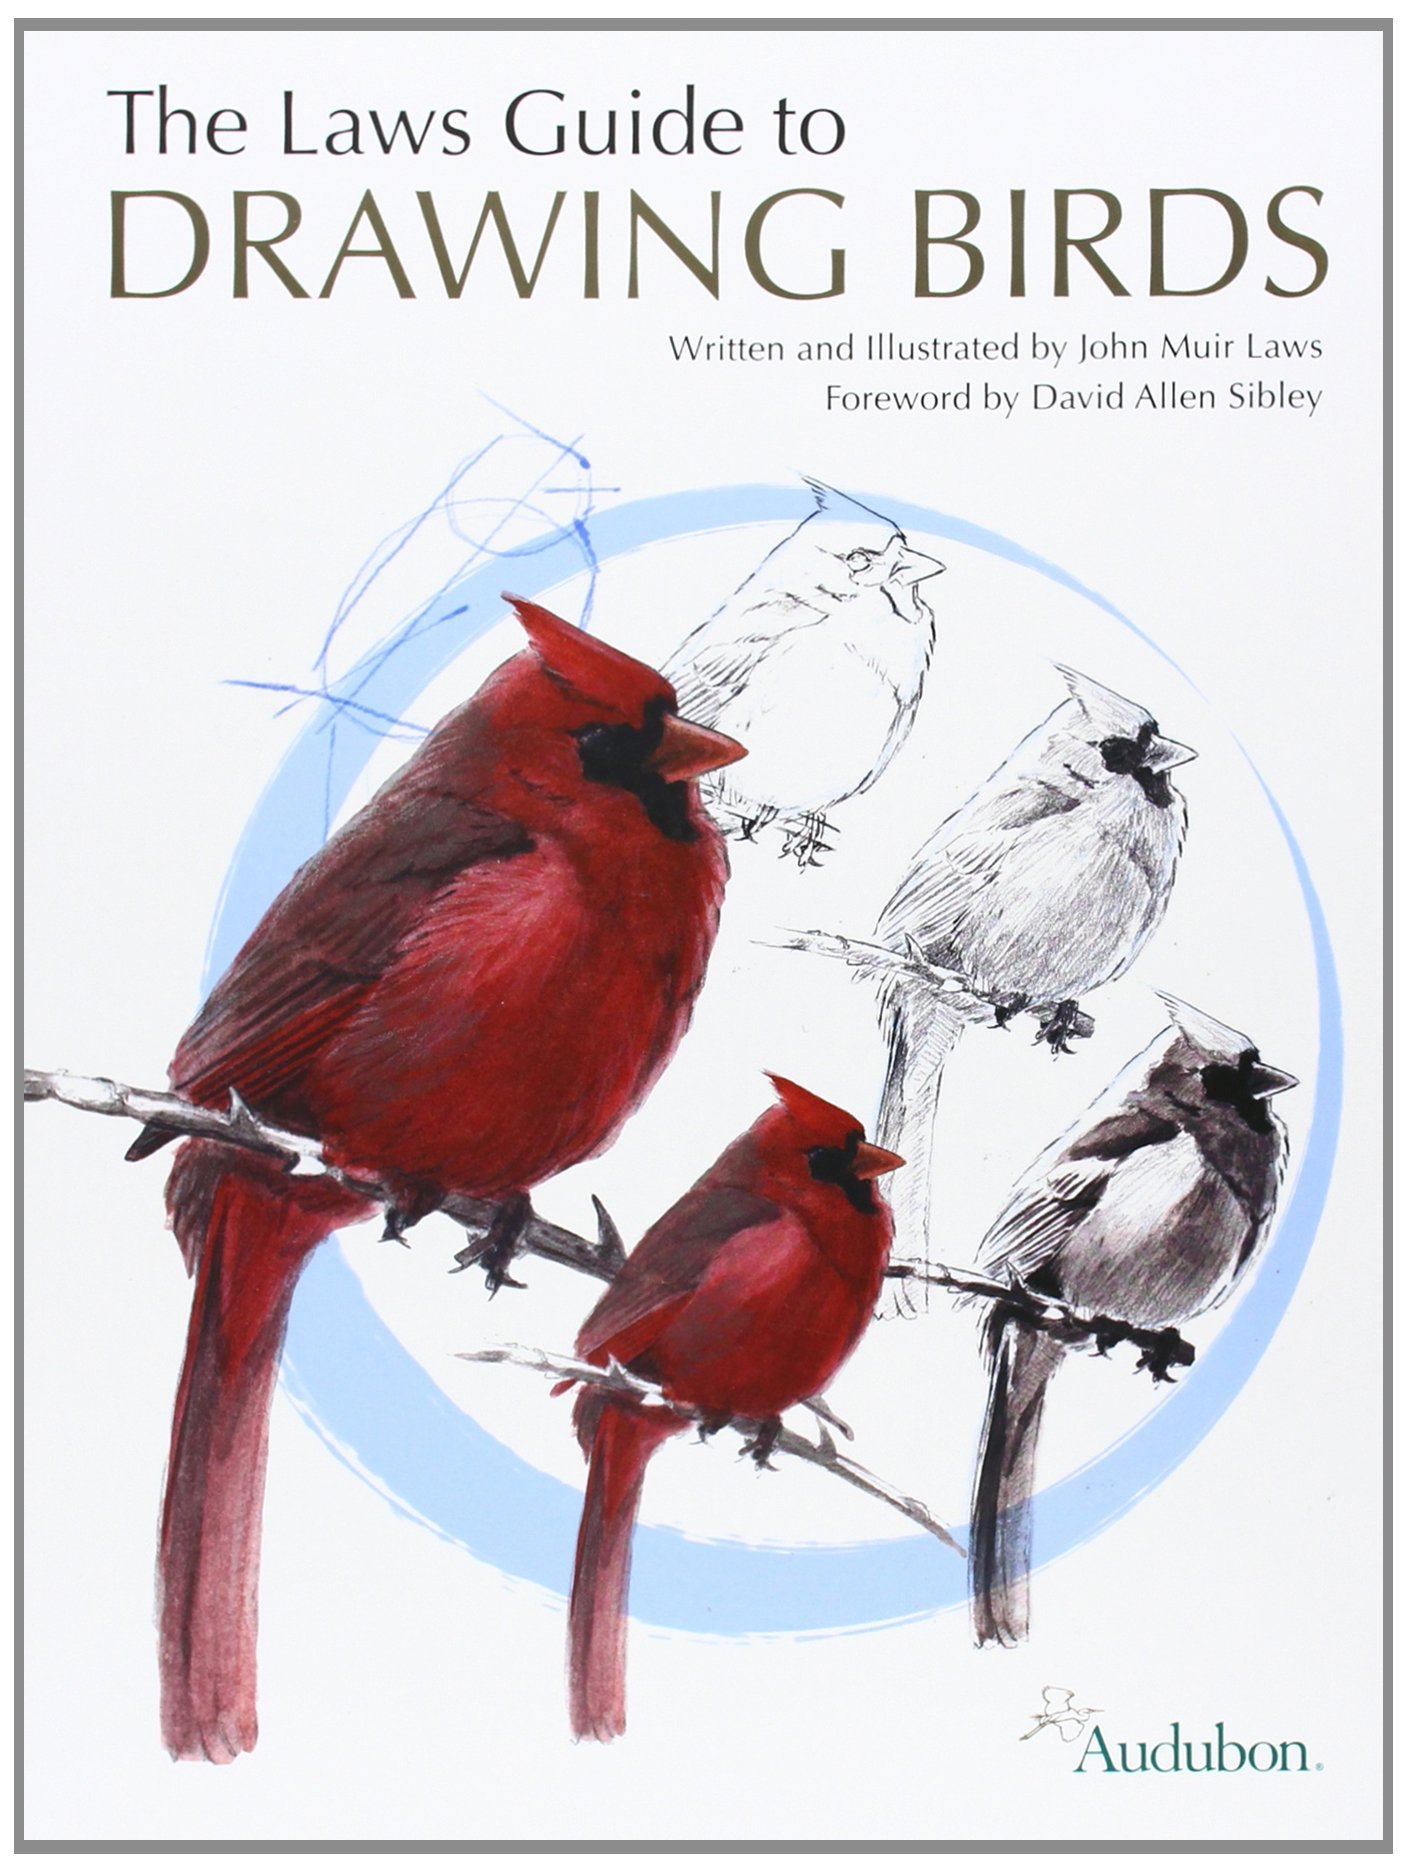 The laws guide to drawing birds amazon john muir laws books fandeluxe Gallery